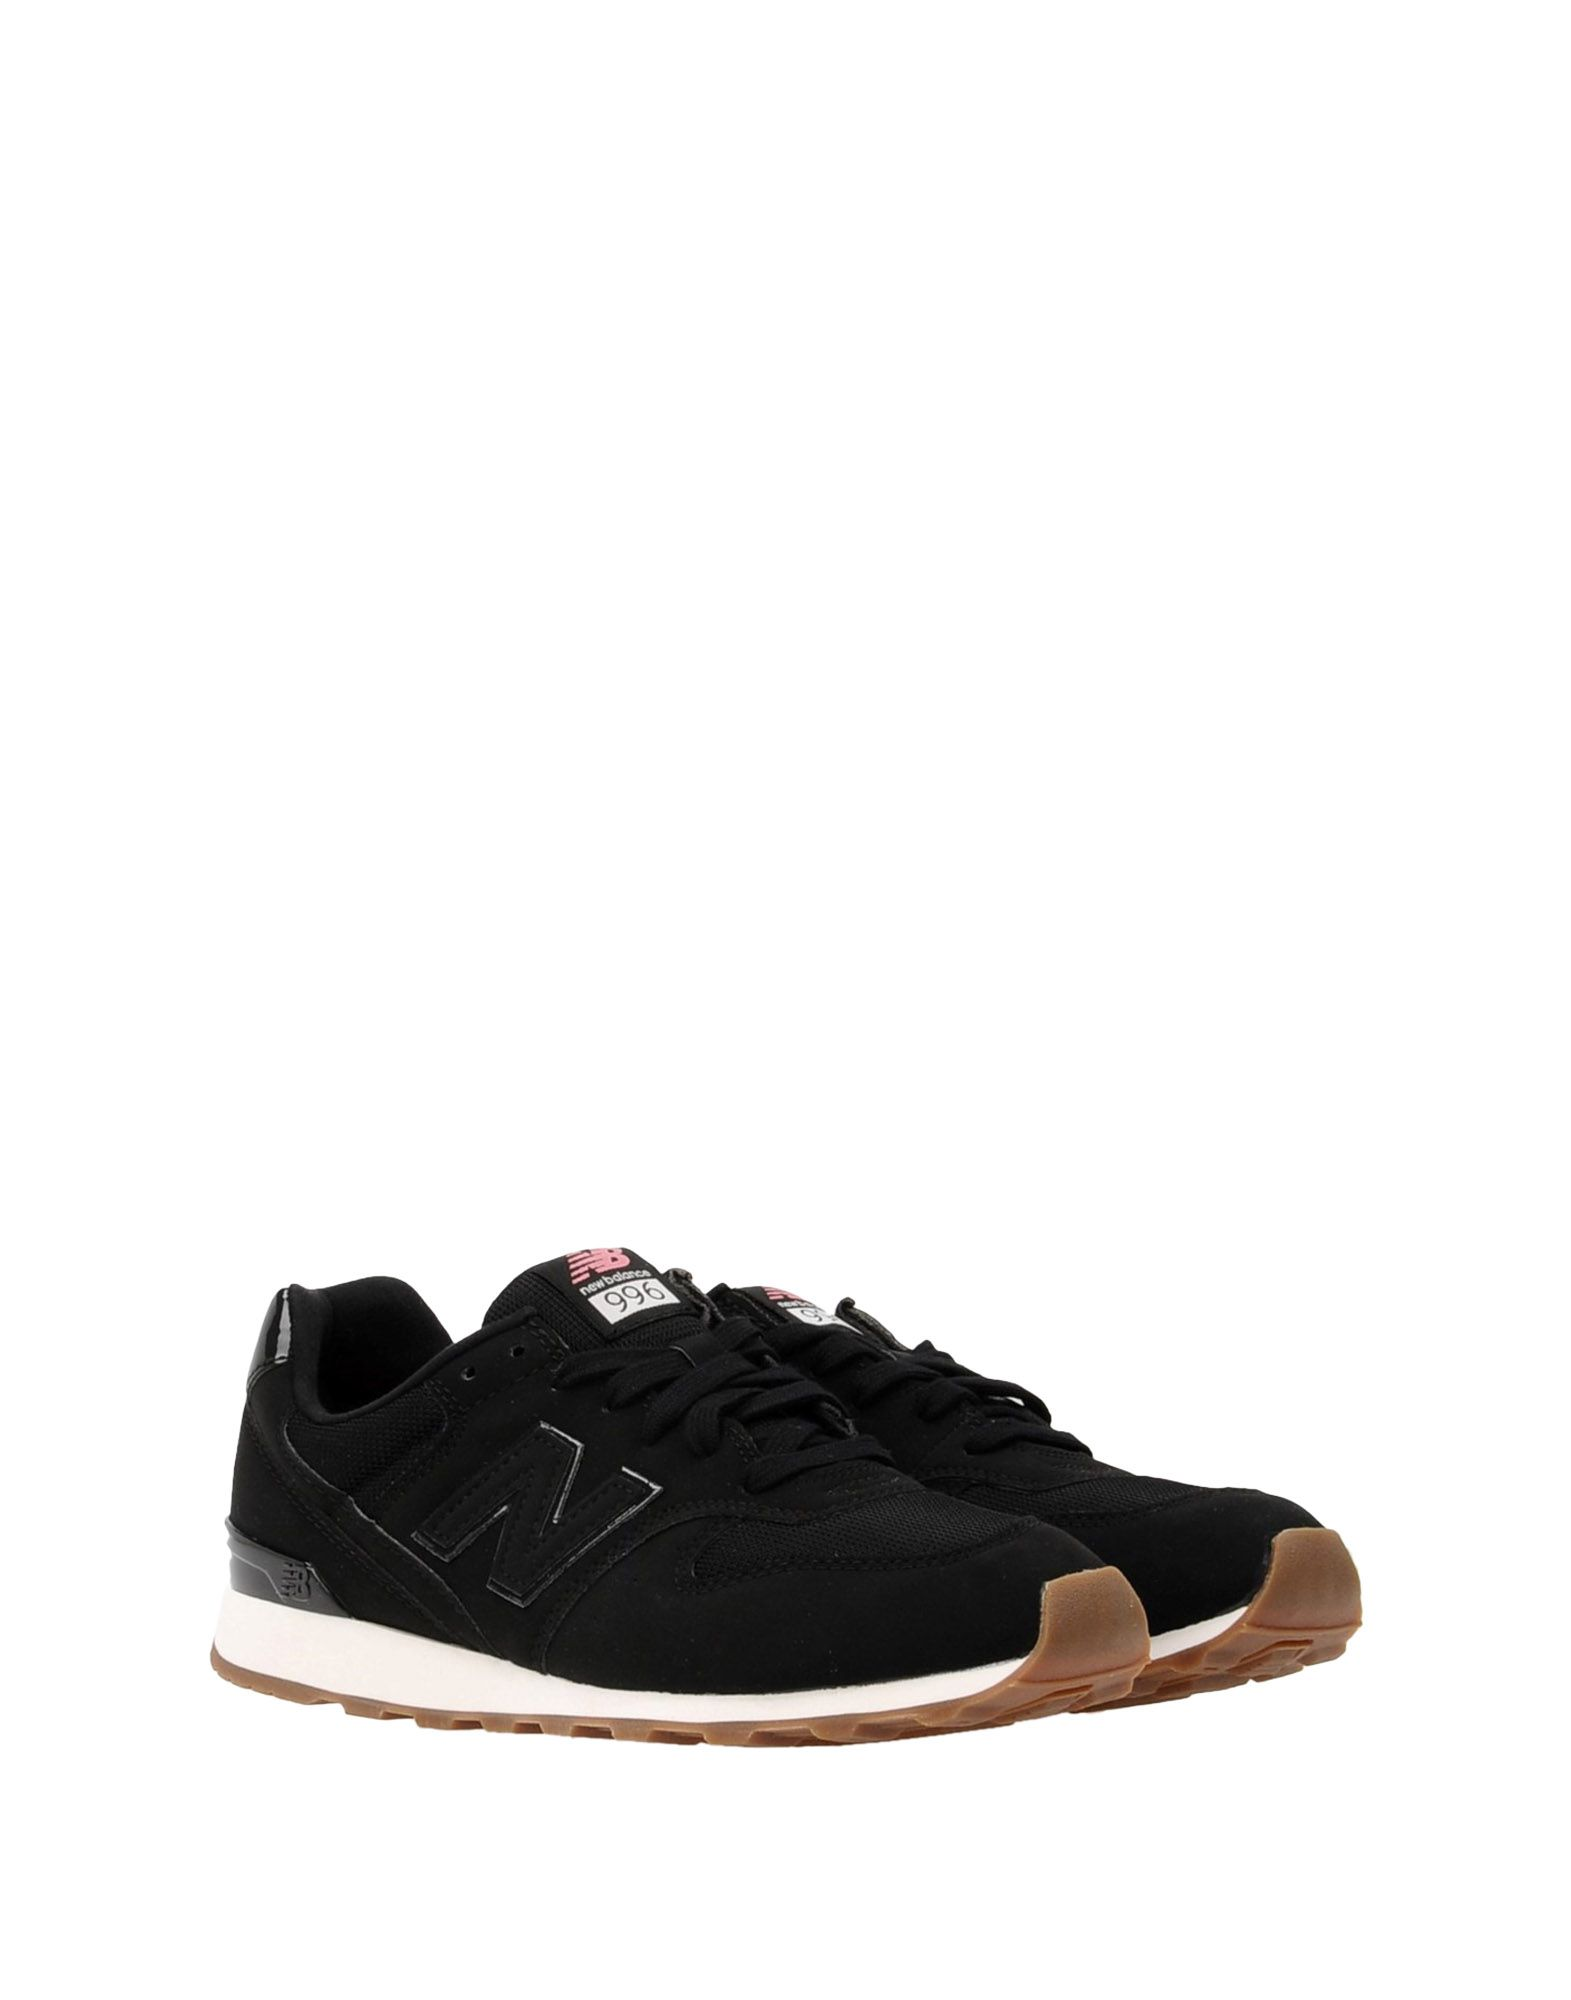 Sneakers New Balance 996 Synthetic Nubuck Patent Details - Femme - Sneakers New Balance sur